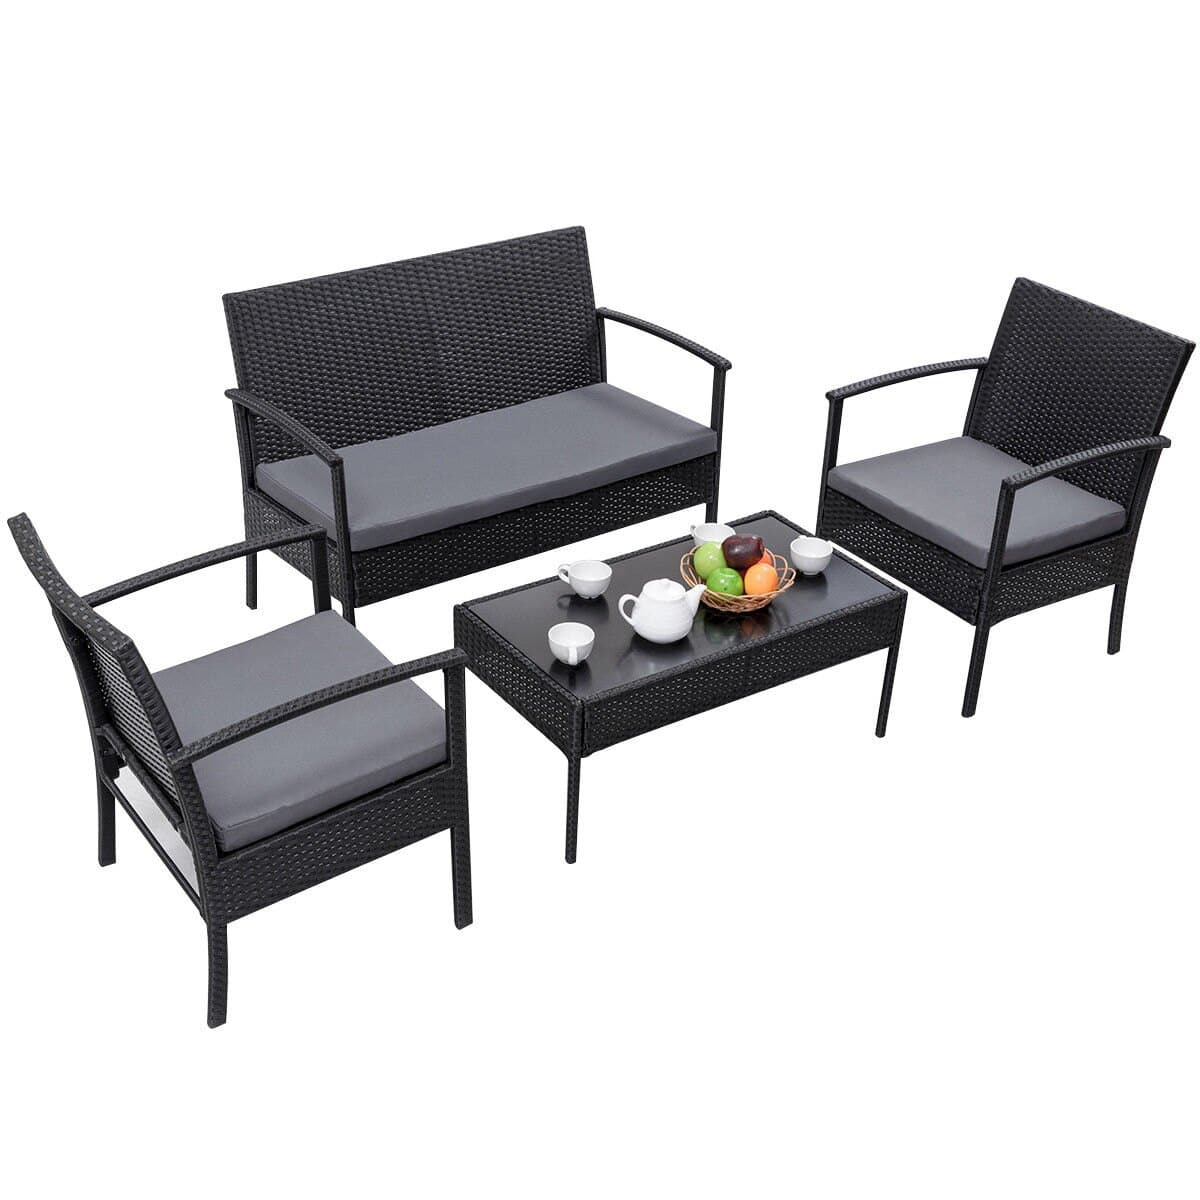 4-Piece Rattan Wicker Outdoor Patio Furniture Set by Costway $144 + Free Shipping